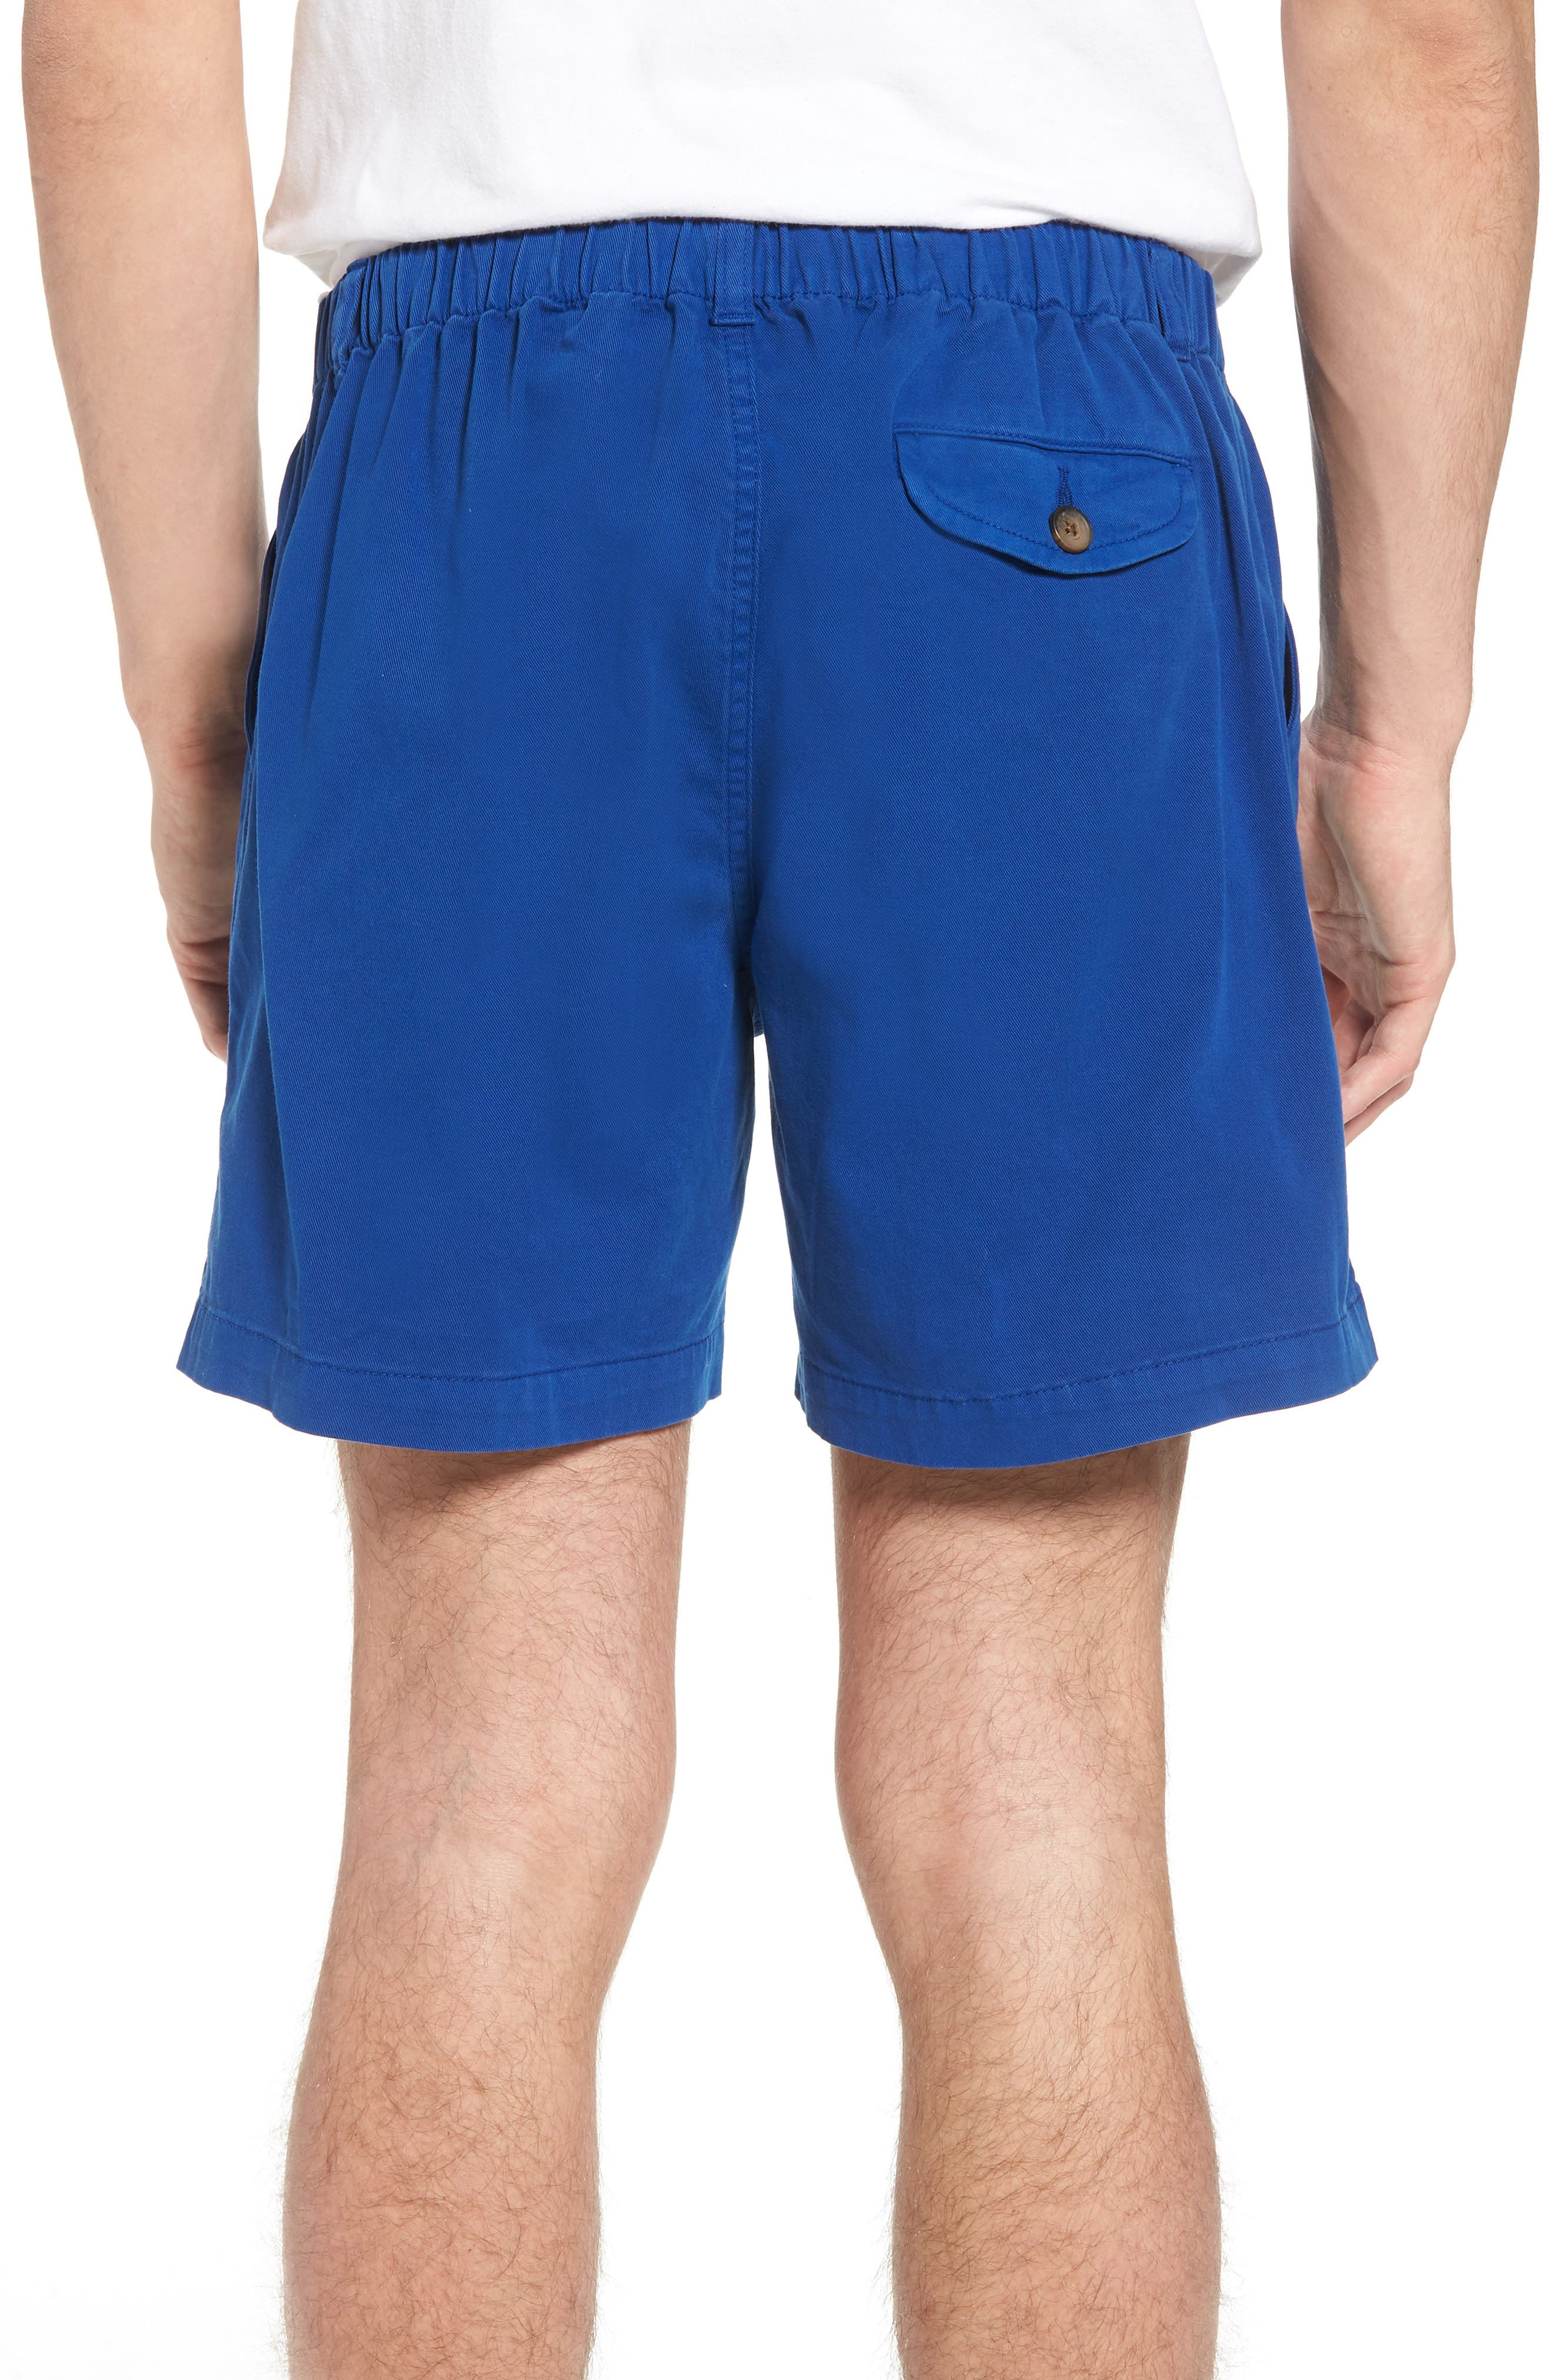 Snappers Elastic Waist 5.5 Inch Stretch Shorts,                             Alternate thumbnail 2, color,                             PREP BLUE